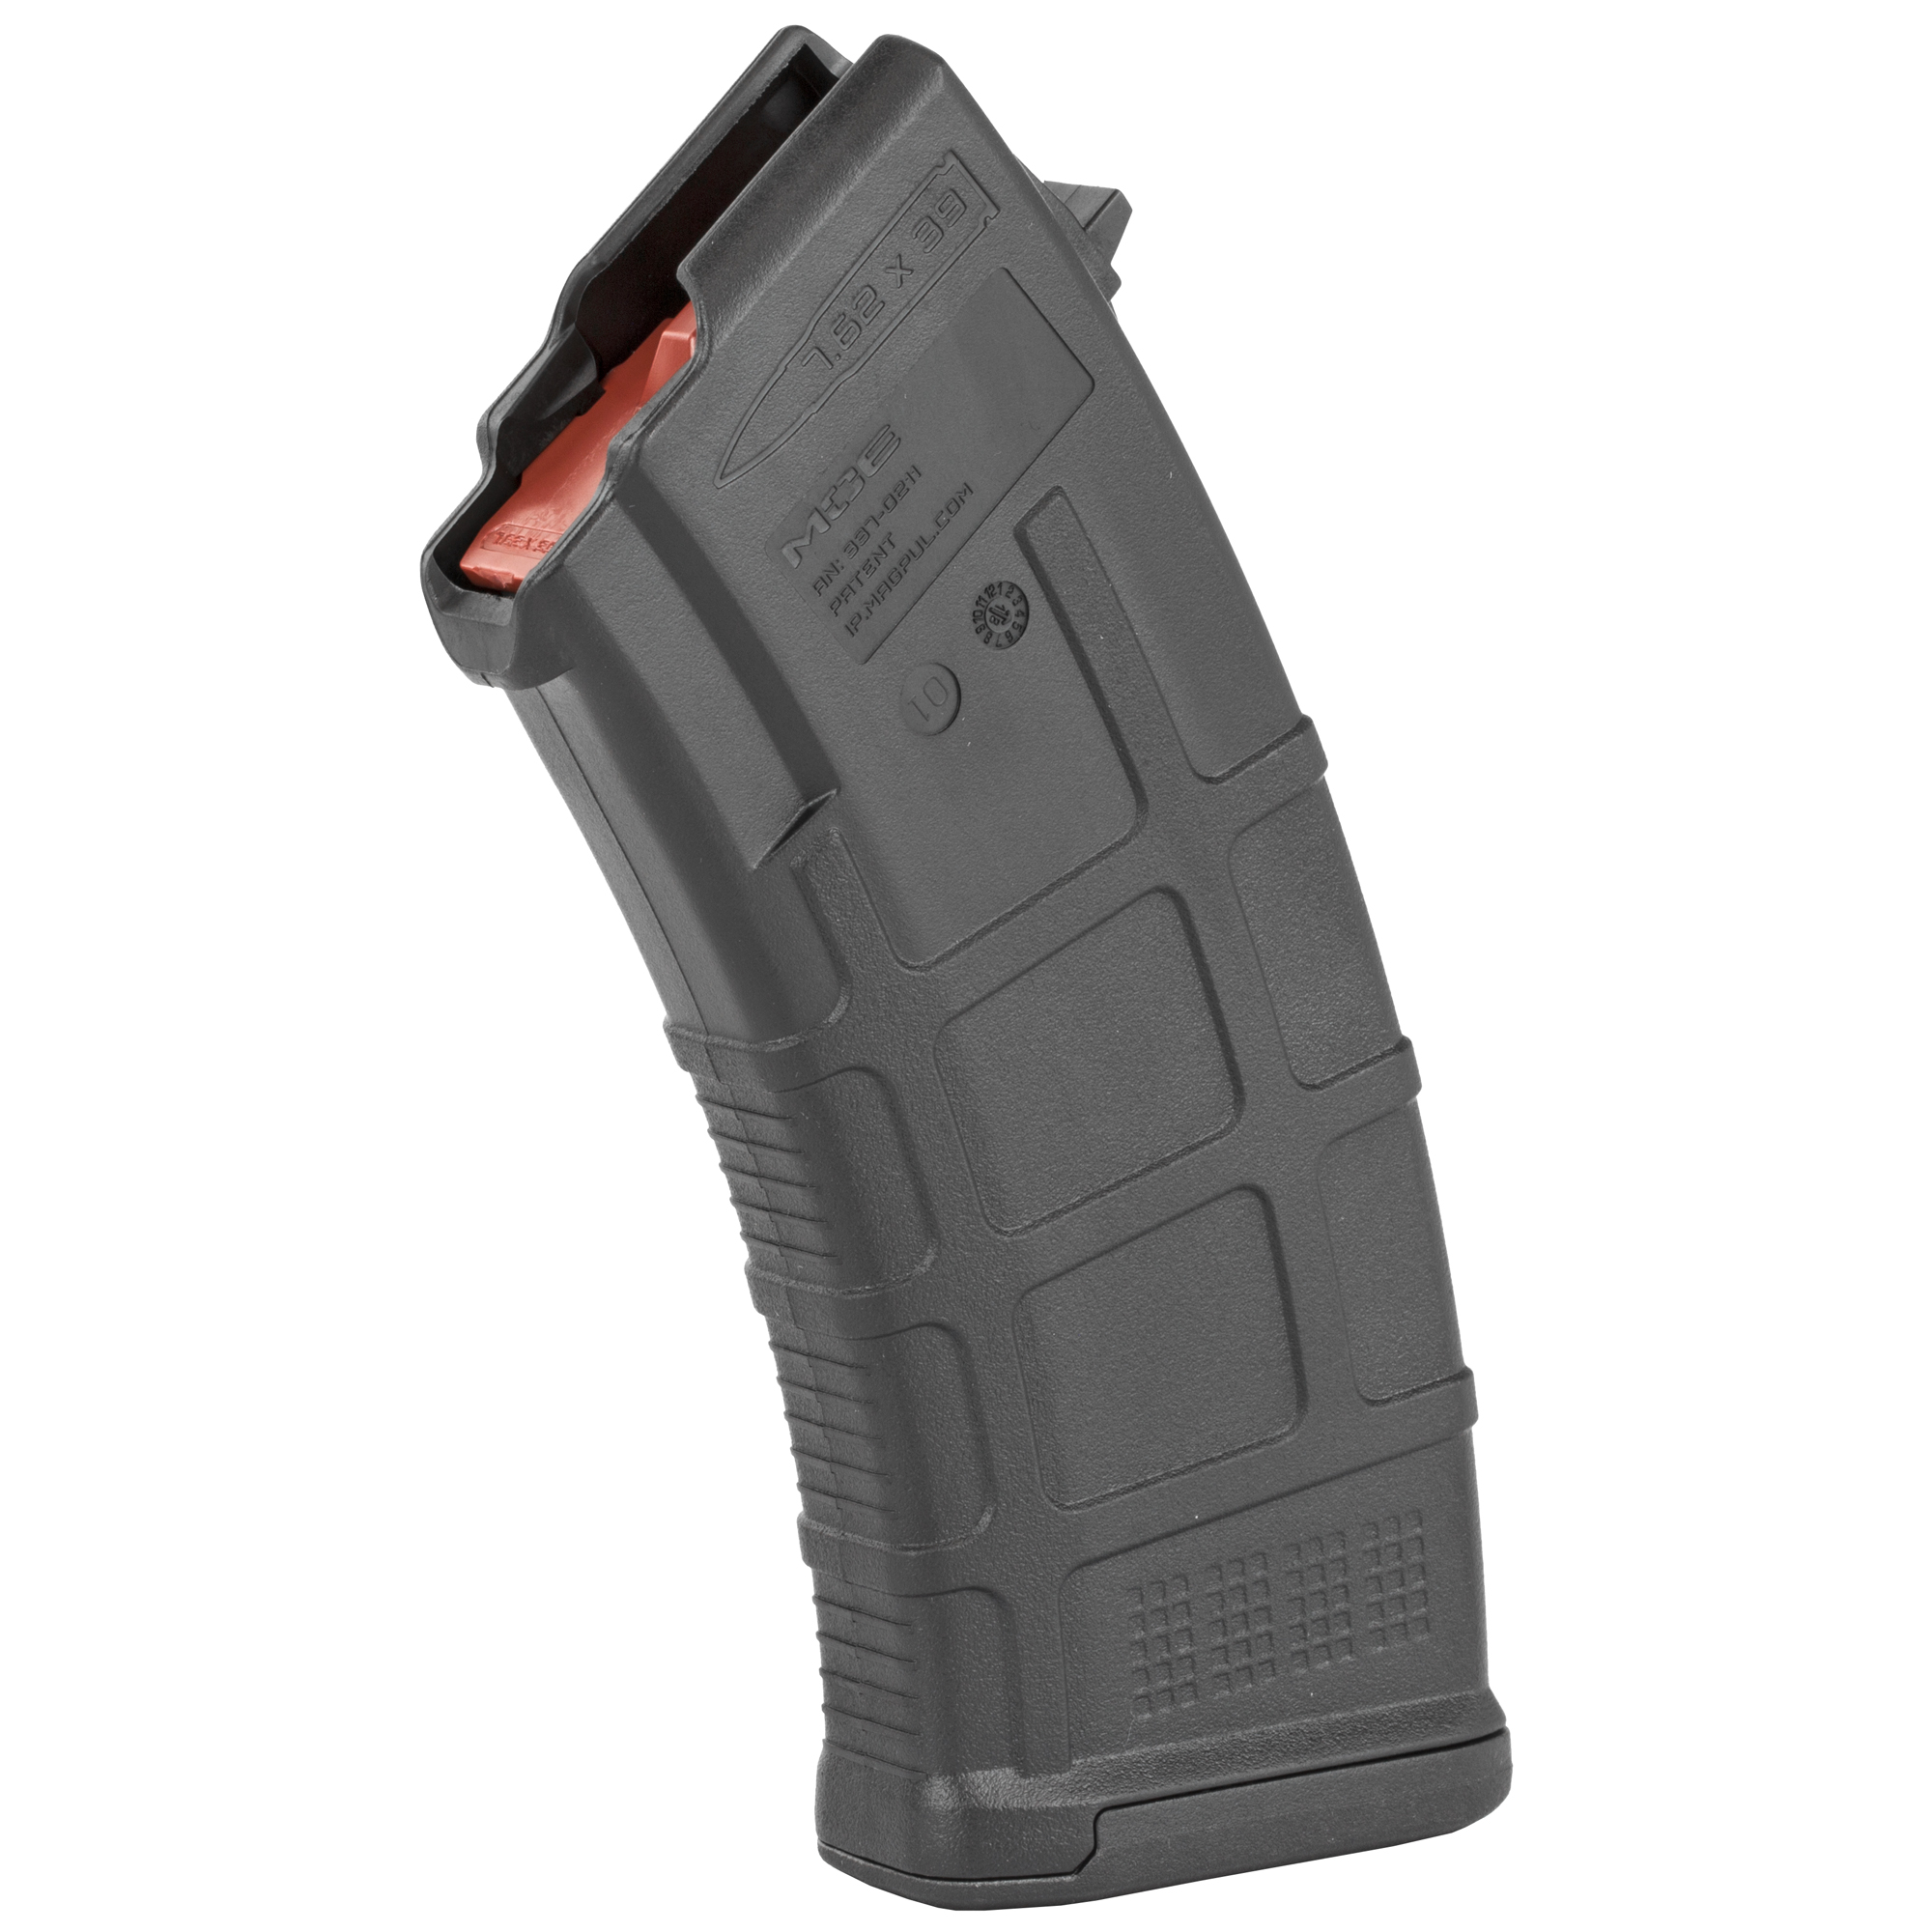 """The PMAG 20 AK/AKM MOE is an inexpensive"""" lightweight"""" high reliability 20-round polymer magazine designed for Kalashnikov pattern rifles in 7.62x39mm (AK-47"""" AKM"""" AKS"""" SIG556R"""" and others.) It features a removable floorplate"""" constant curve geometry"""" and a high-reliability/low-friction follower for the affordable performance you expect from a MOE PMAG. Made in U.S.A. Magazine counts as three US compliance parts for 922(r)."""